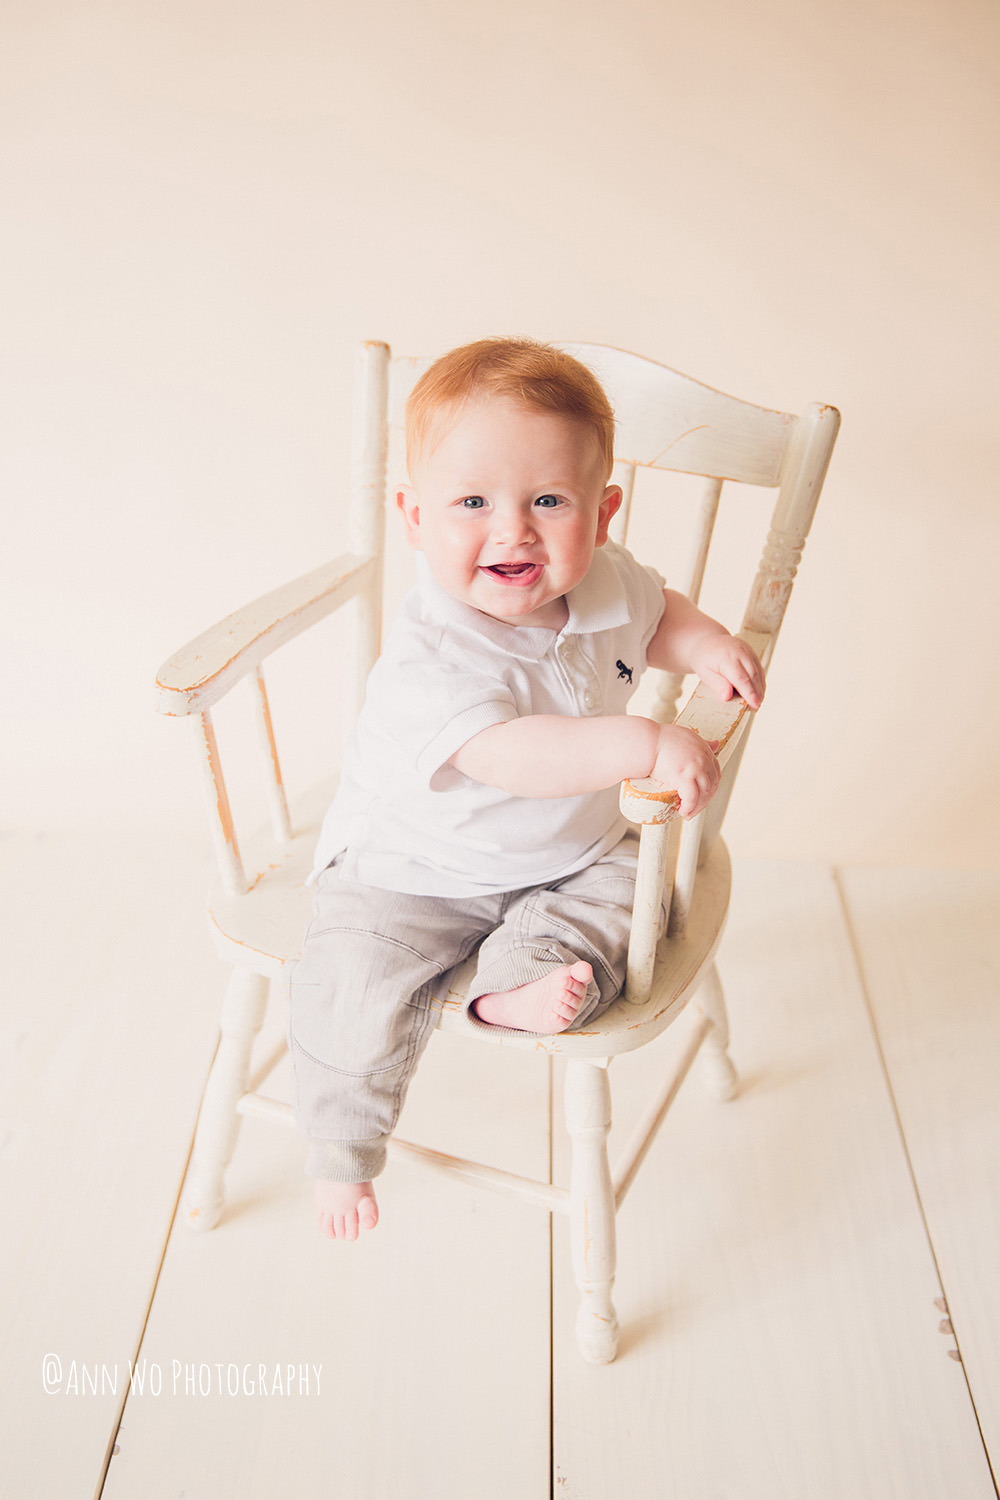 web-baby-photography-london-ann-wo-6-month-boy-sitter-session-05.JPG